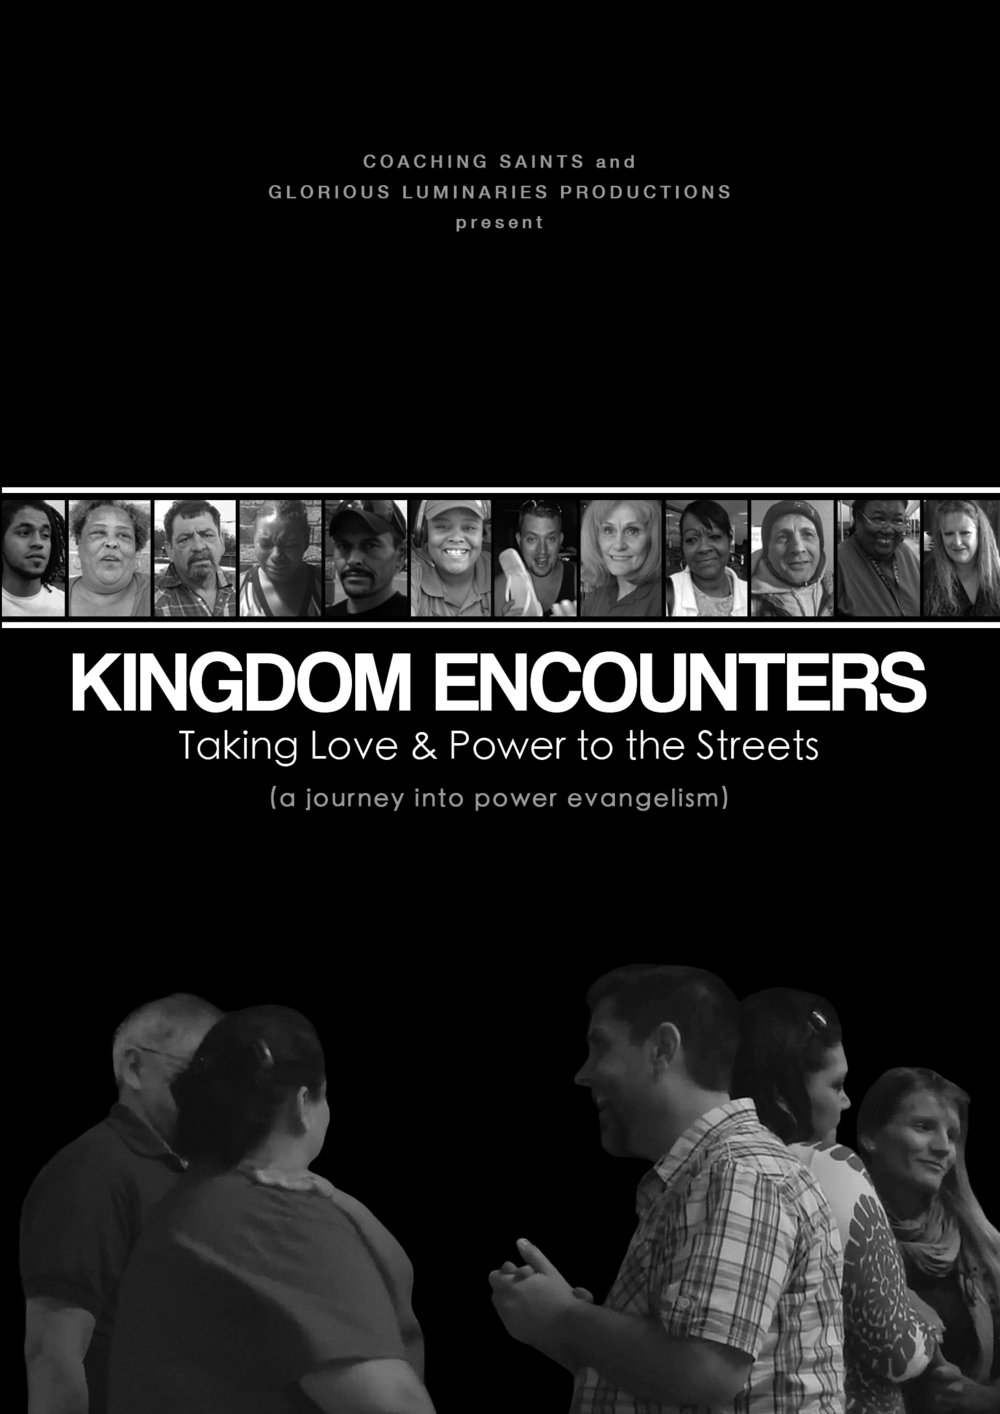 To purchase a digital download or rental ofKingdom Encounters, go toourVimeo page. To purchase DVDs of Kingdom Encounters or other products, go to coachingsaints.com.